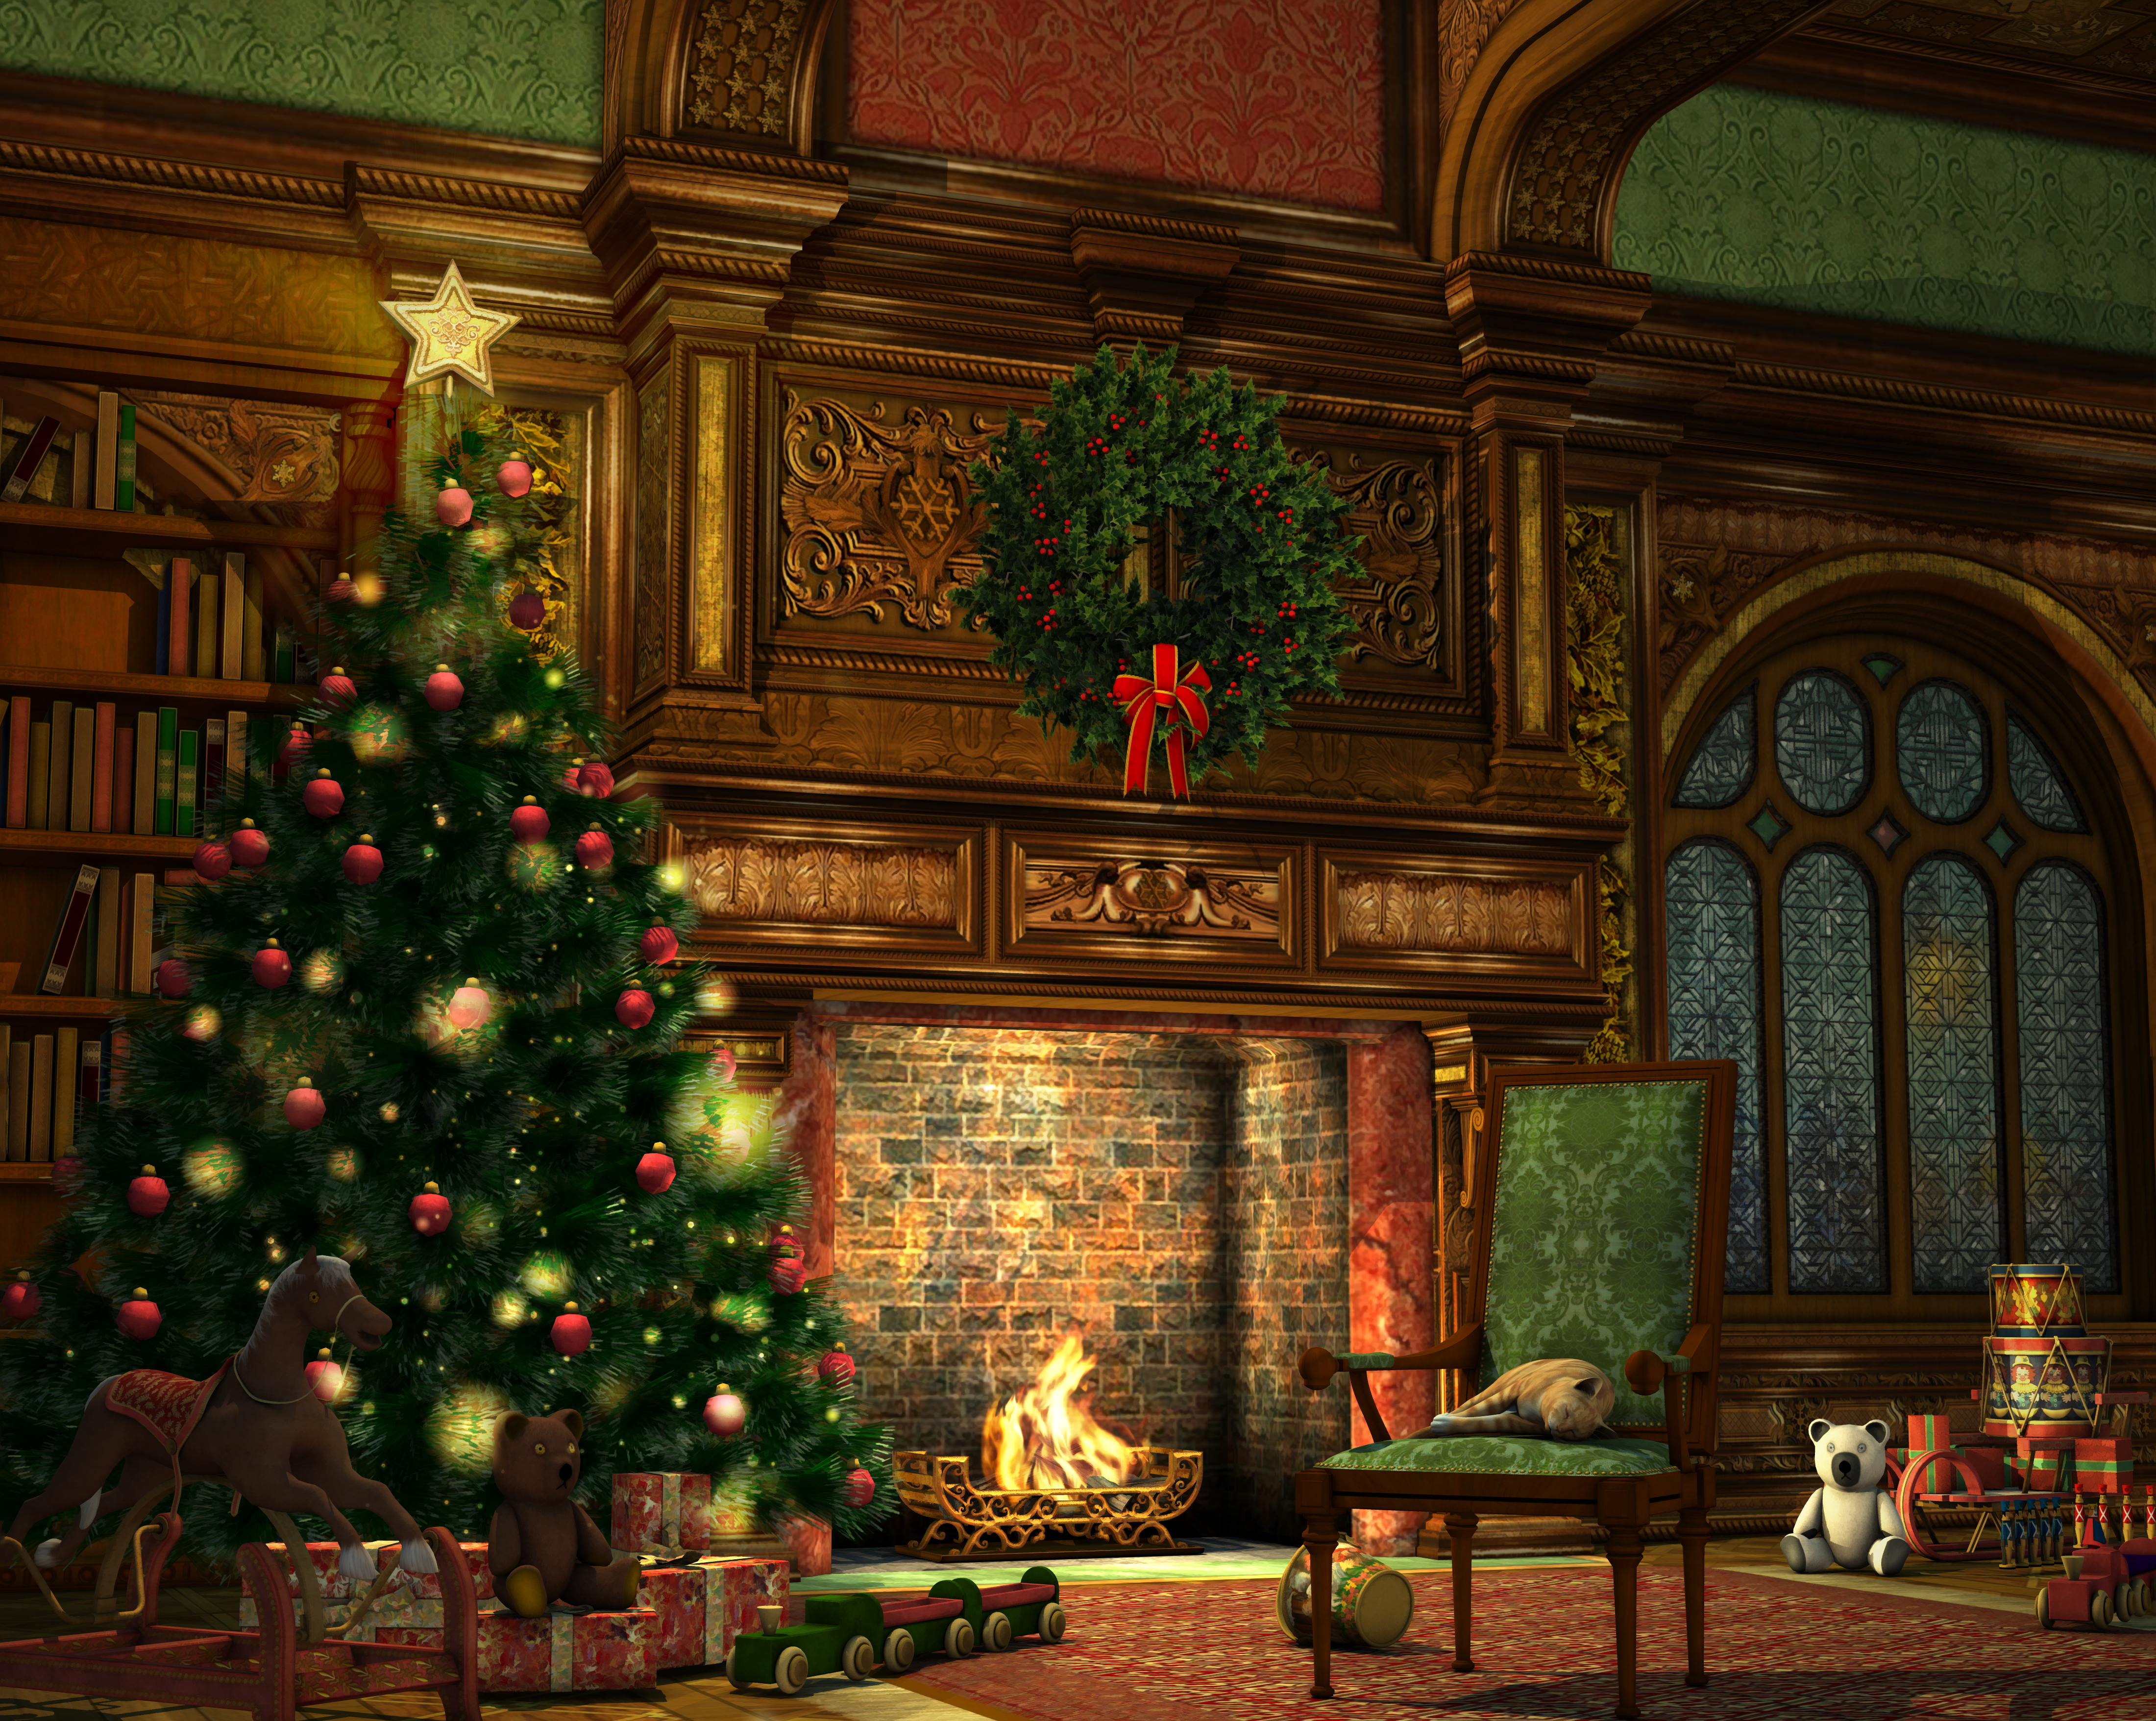 Christmas in Merry Old Regency England ~ Simply Romance